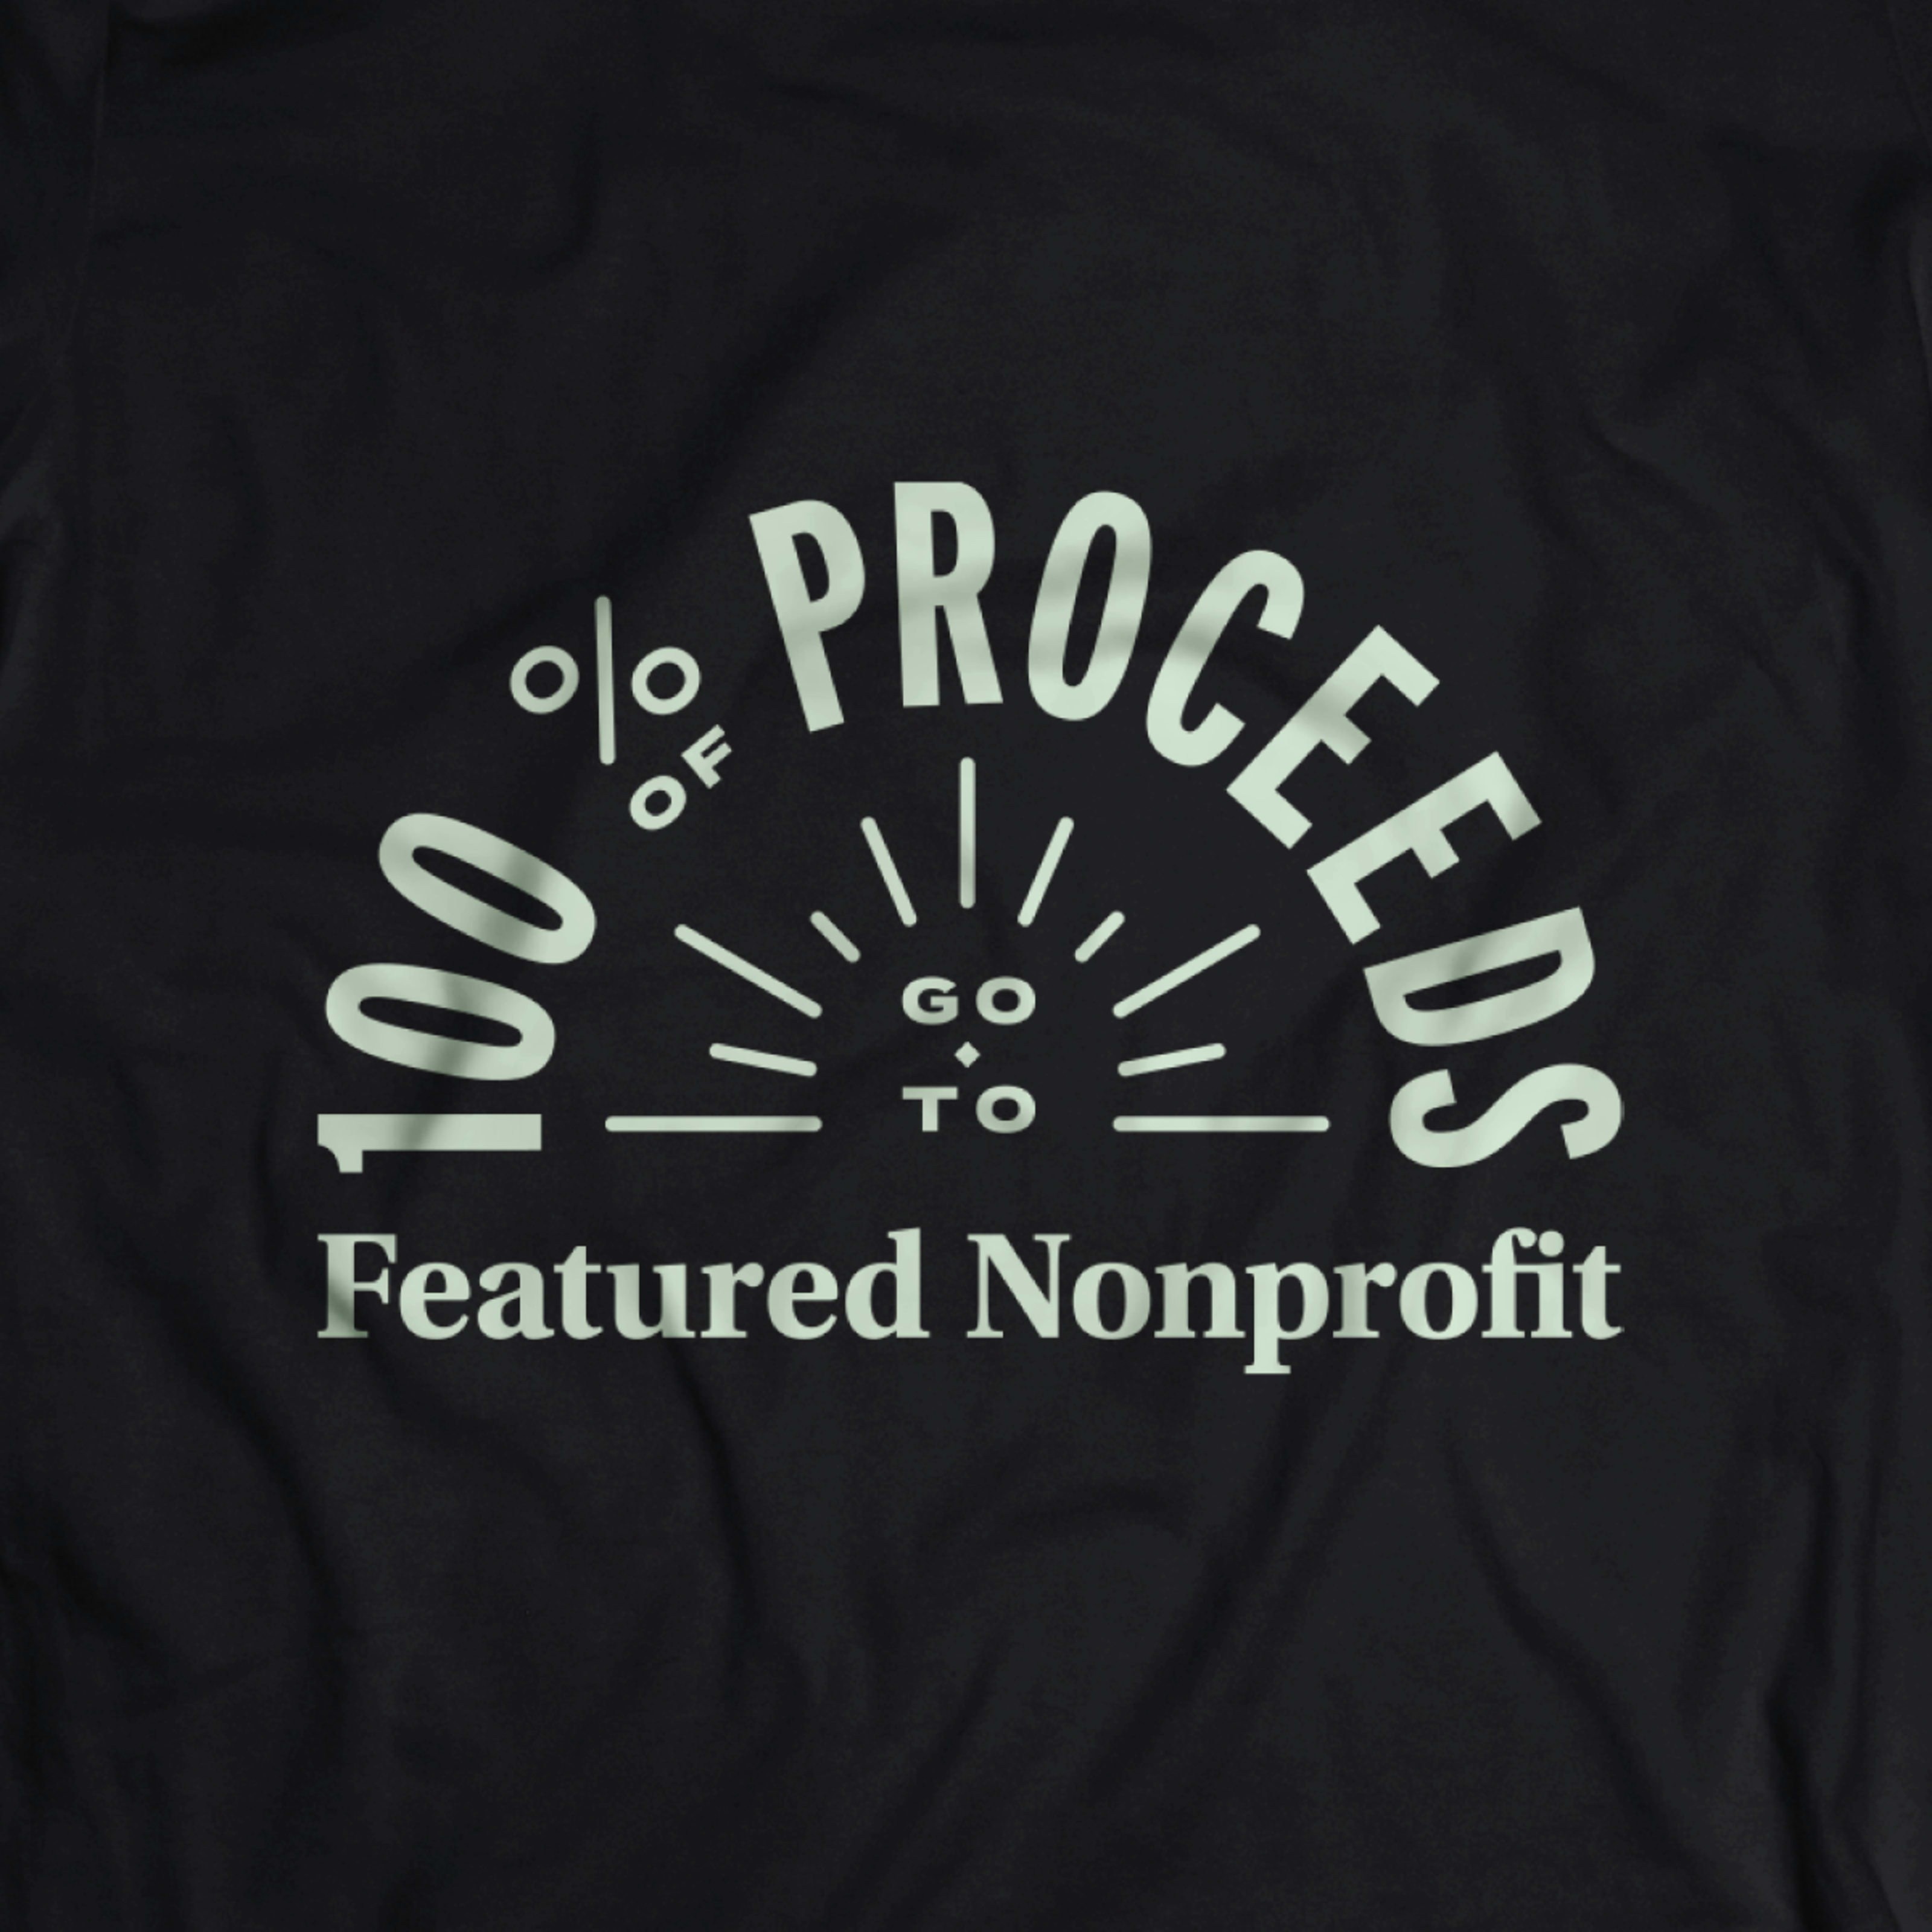 100% of Proceeds go to Featured Nonprofit